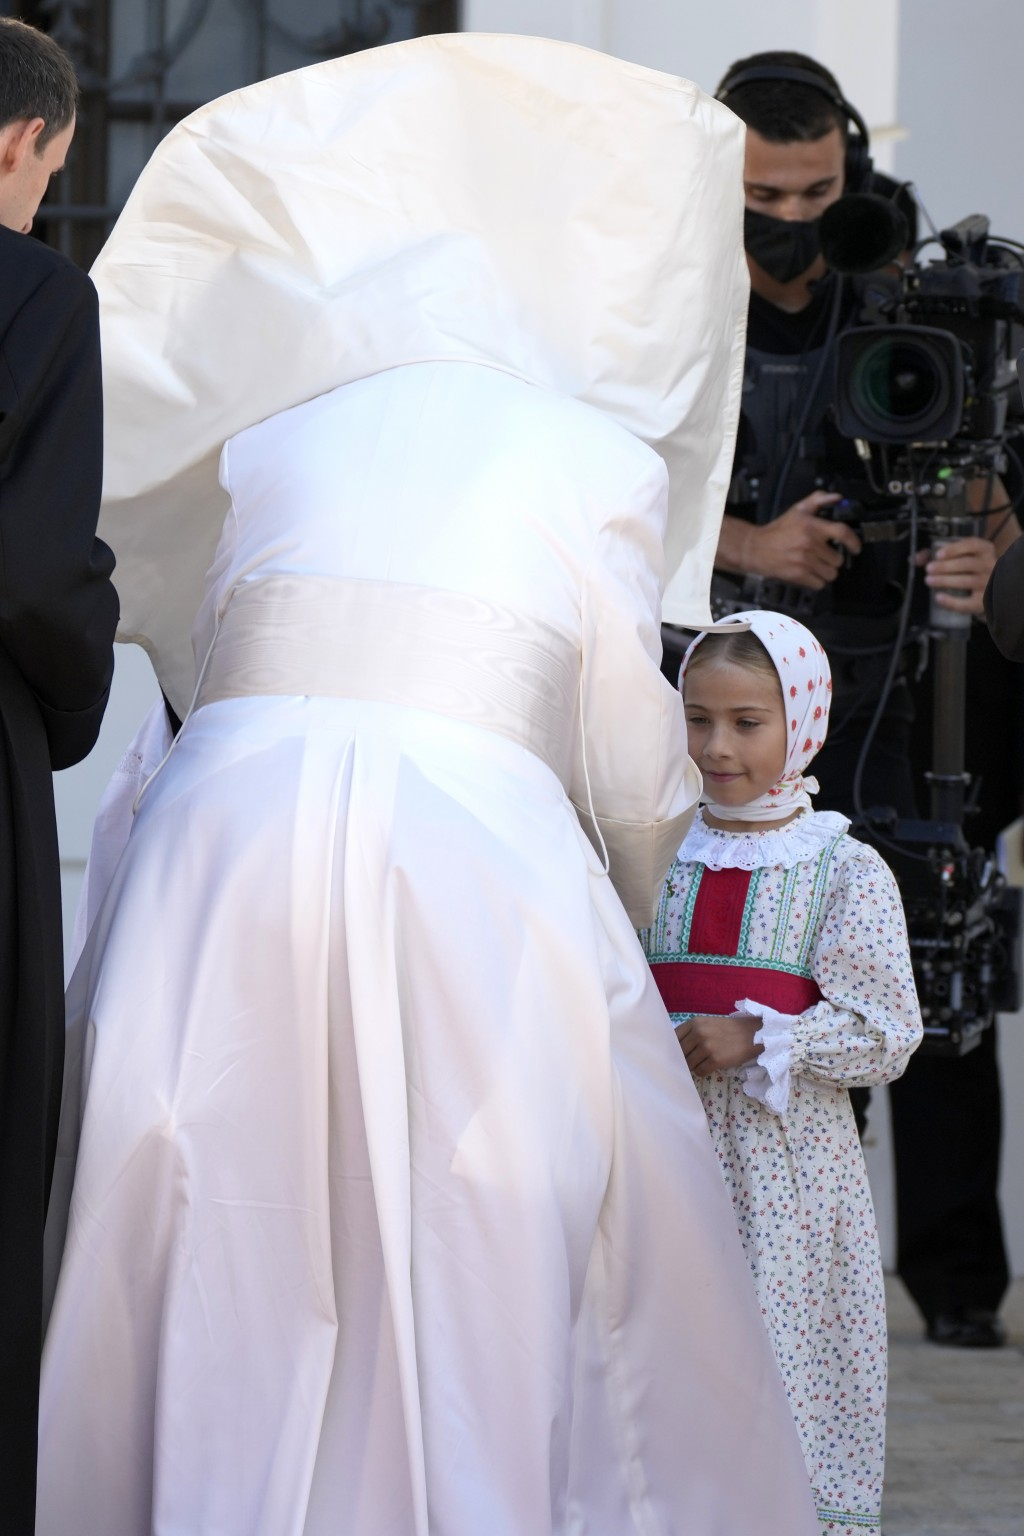 Pope Francis' mantle is blown by the wind as he greets a child during a welcoming ceremony at the presidential palace in Bratislava, Slovakia, Monday,...